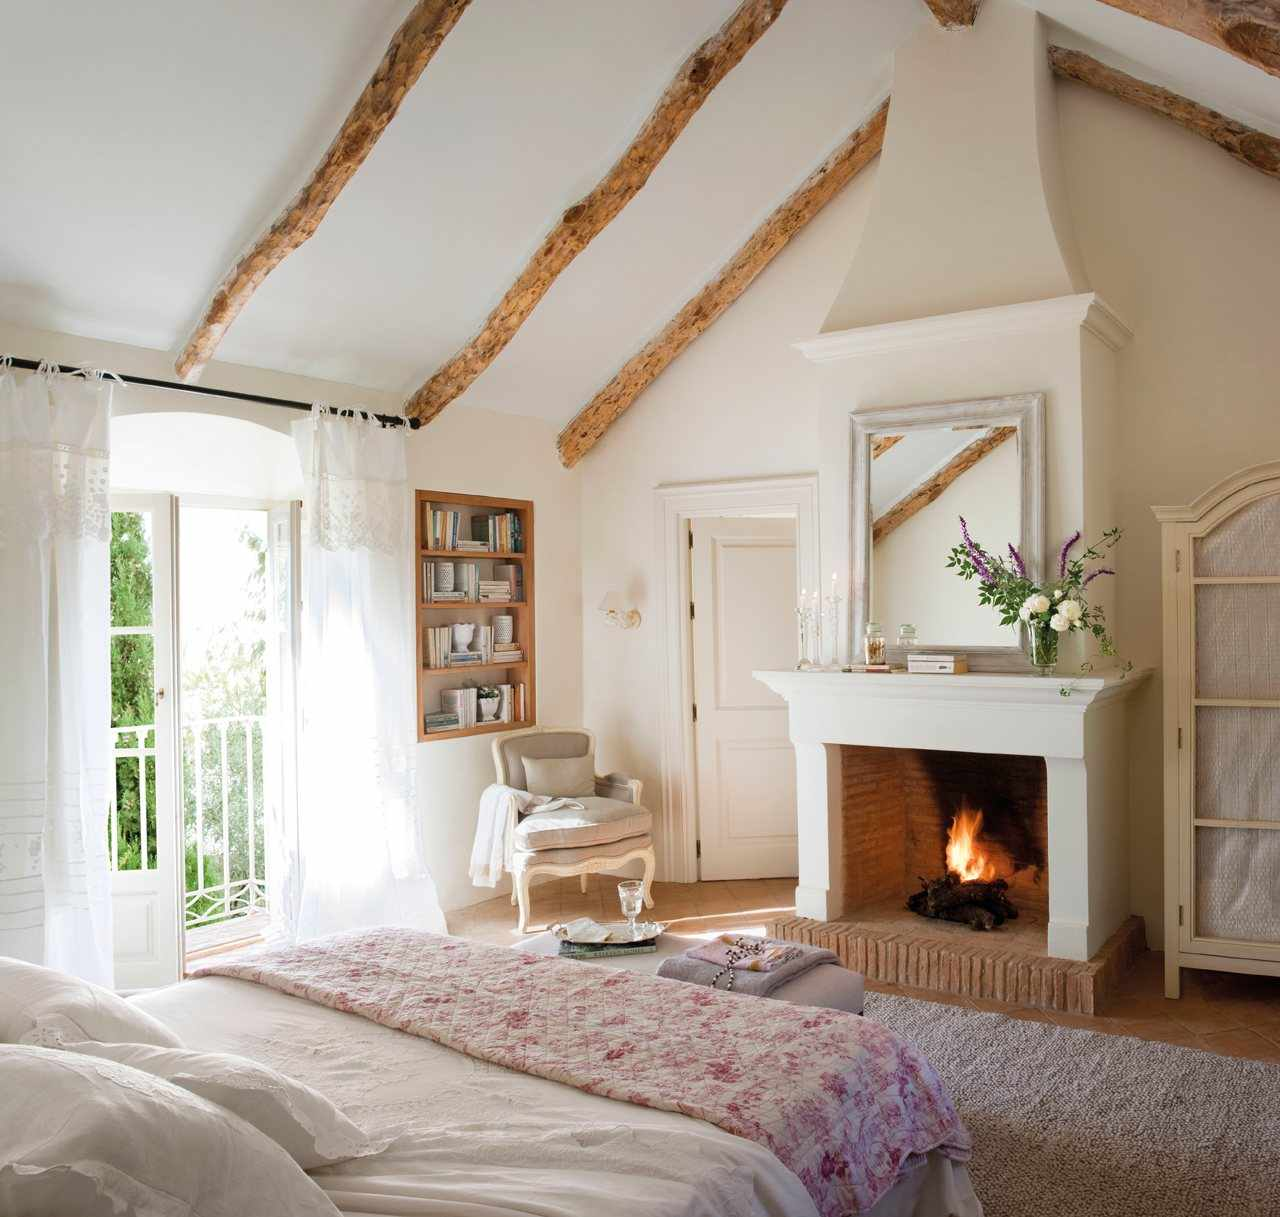 Cozy Bedrooms: Cozy Bedroom Décor In Farmhouse Style